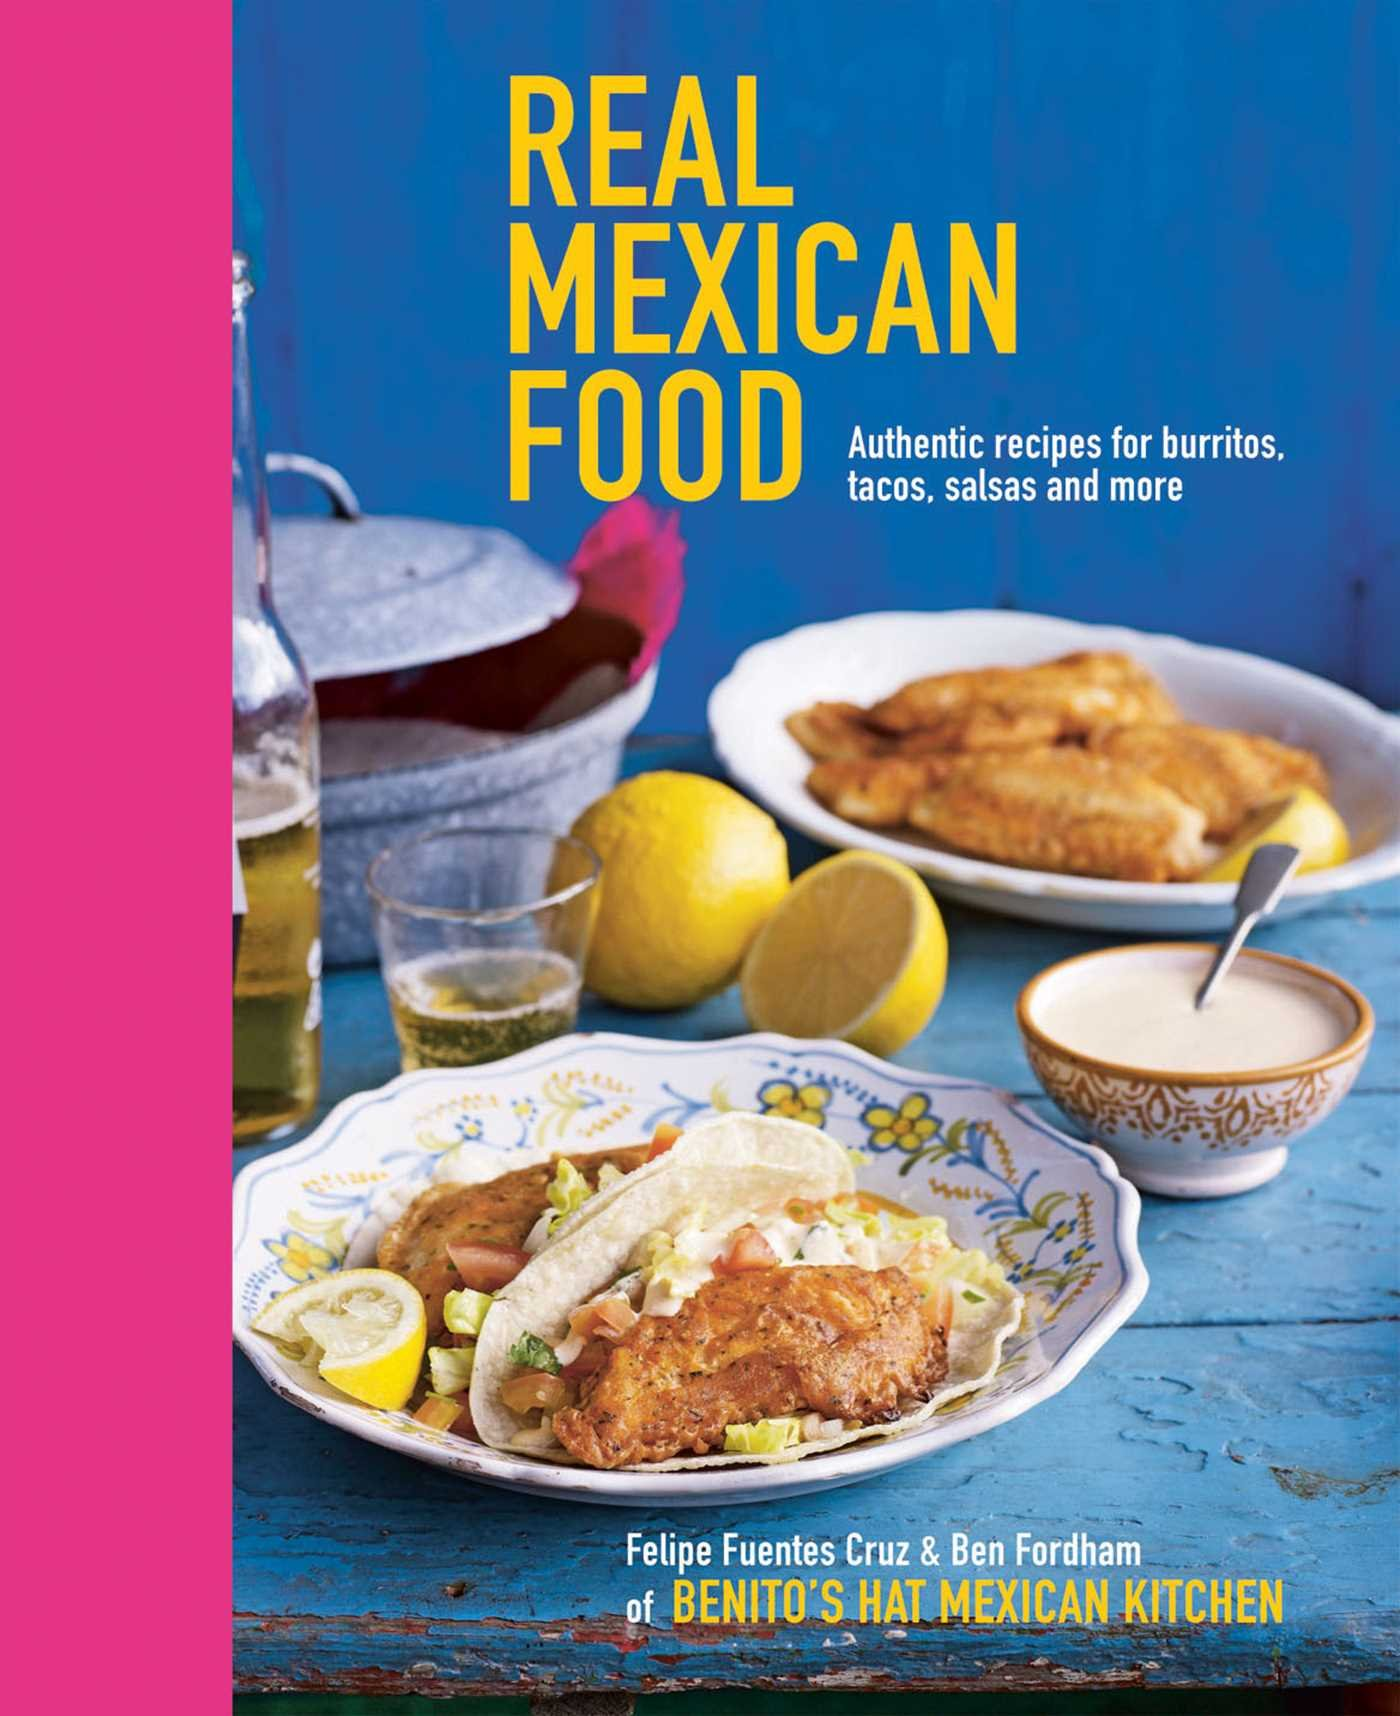 Real mexican food authentic recipes for burritos tacos salsas and real mexican food authentic recipes for burritos tacos salsas and more felipe fuentes cruz ben fordham 9781849753425 amazon books forumfinder Gallery